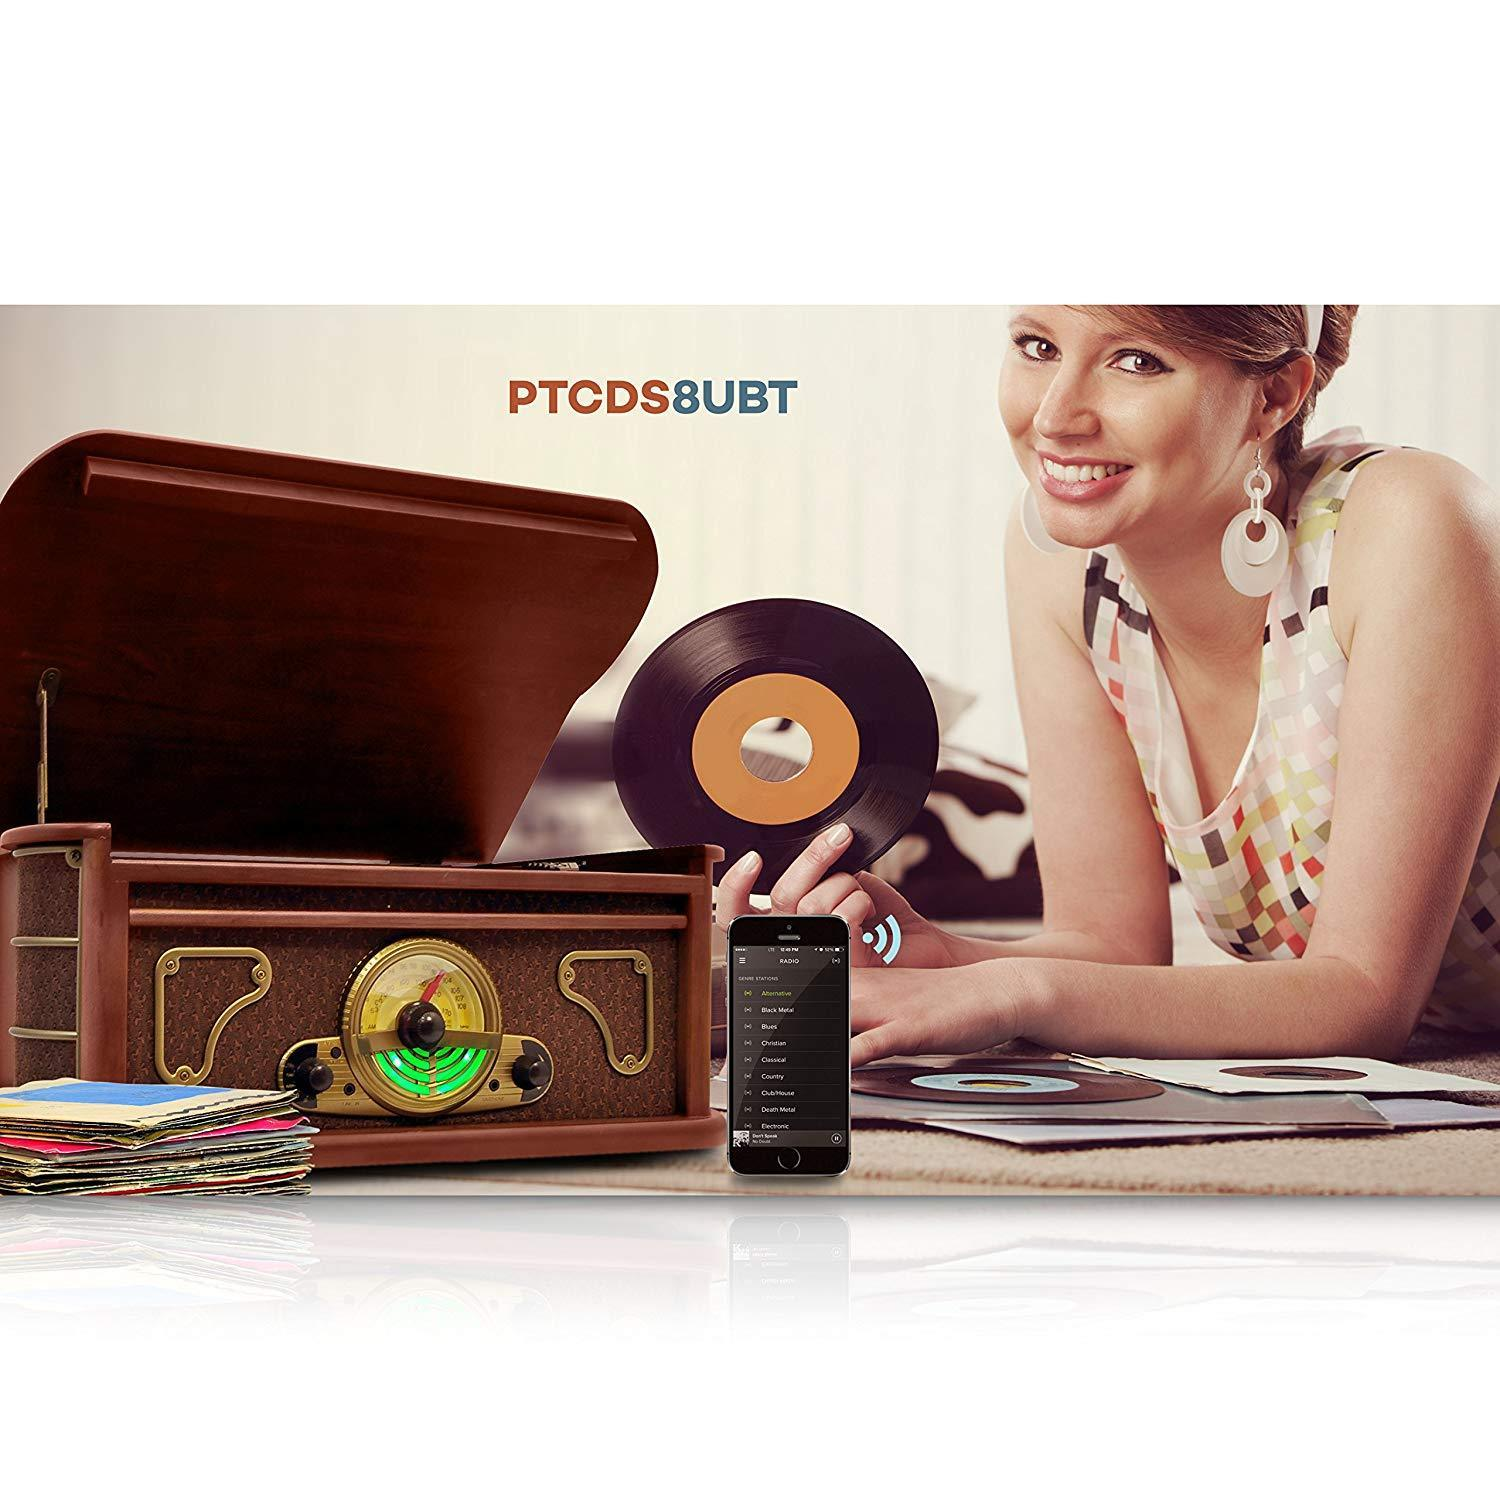 Pyle Bluetooth Turntable Speakers, CD Player - Brown (PTCDS8UBT)